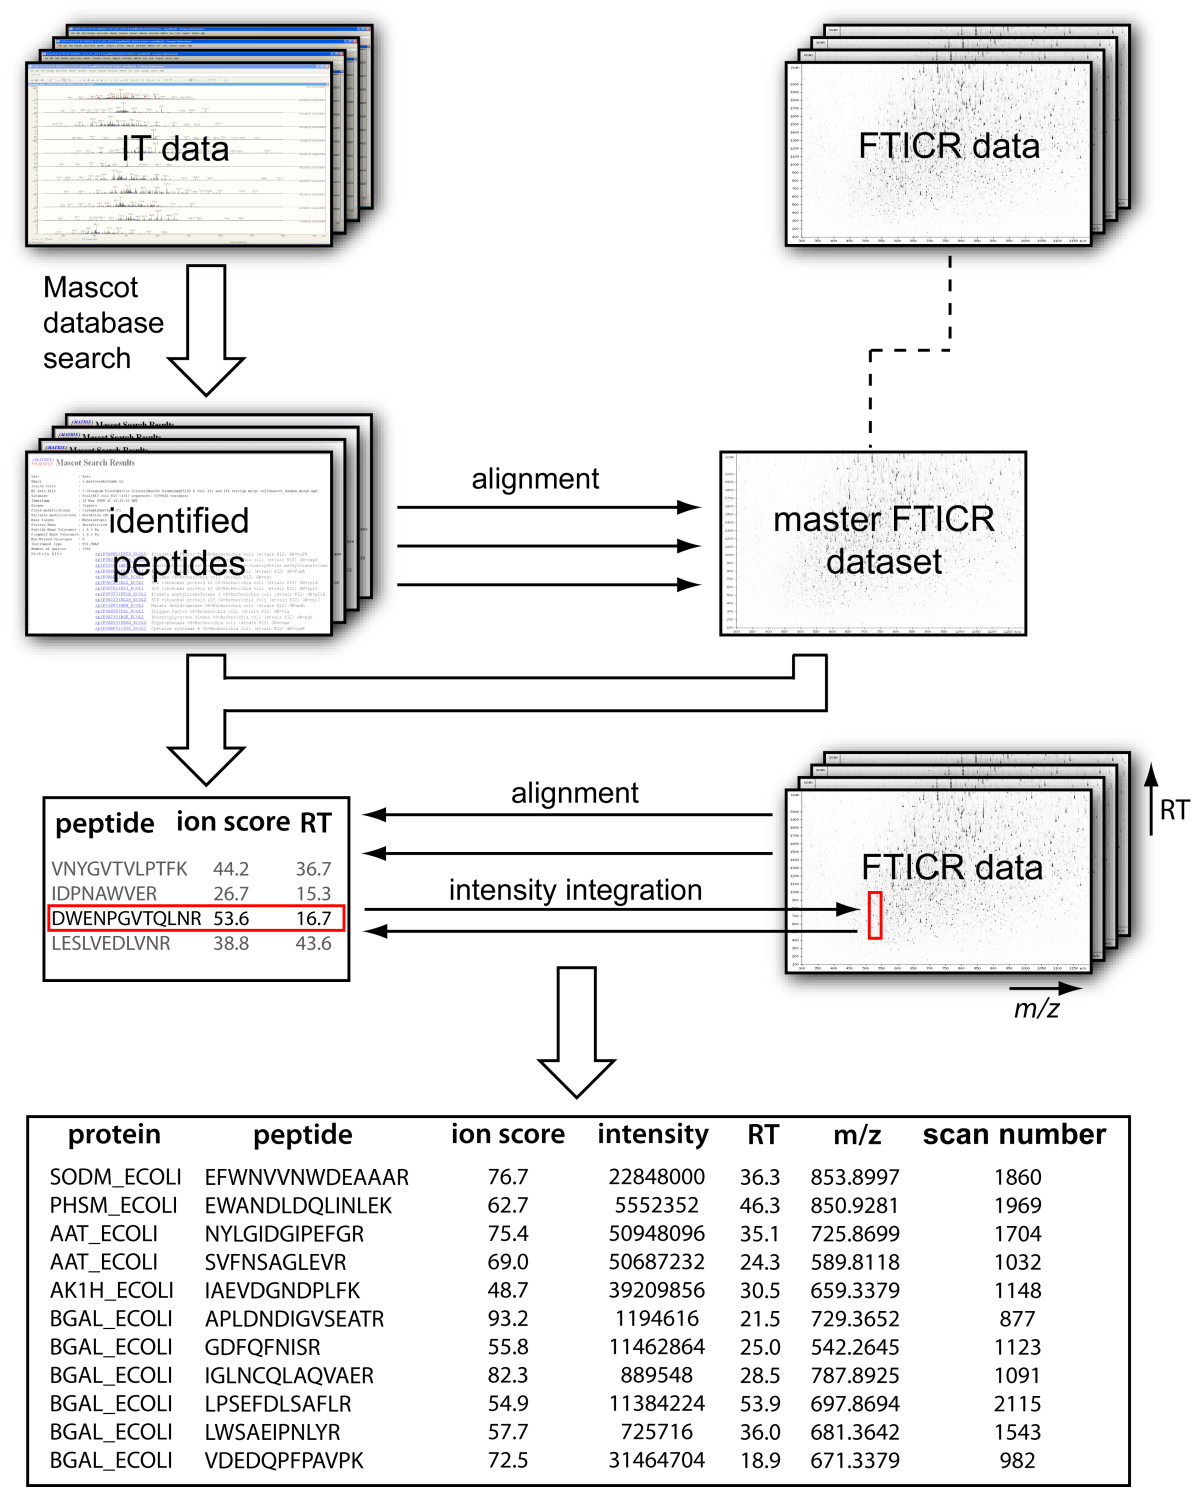 https://static-content.springer.com/image/art%3A10.1186%2F1471-2180-11-126/MediaObjects/12866_2010_Article_1402_Fig5_HTML.jpg